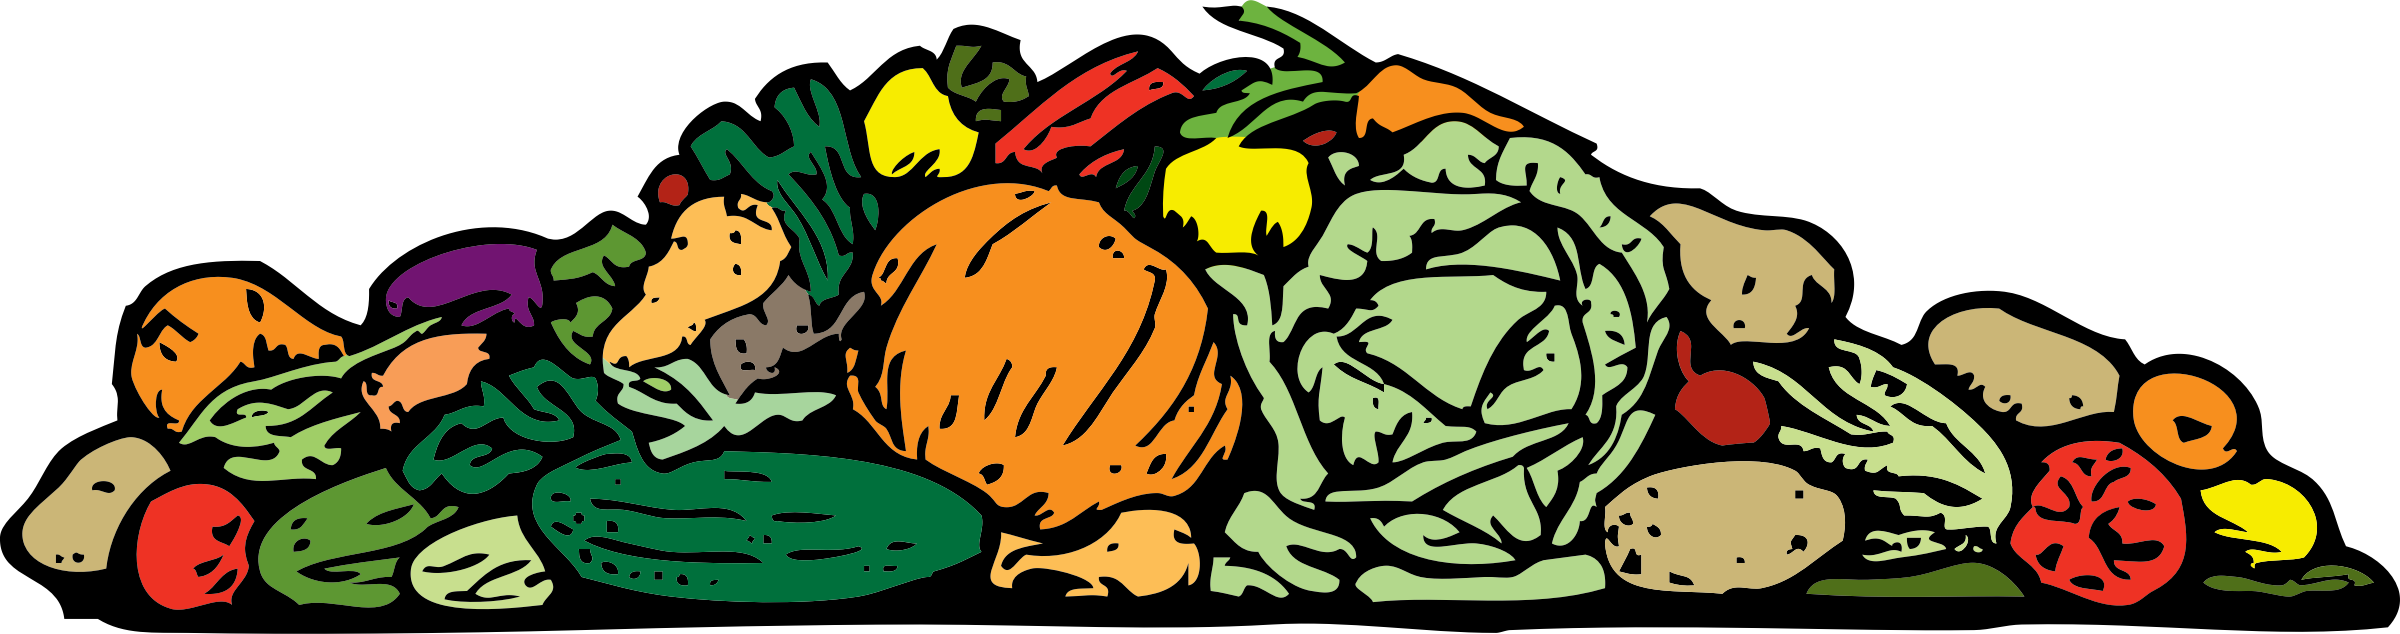 collection of pile. Clipart people vegetable